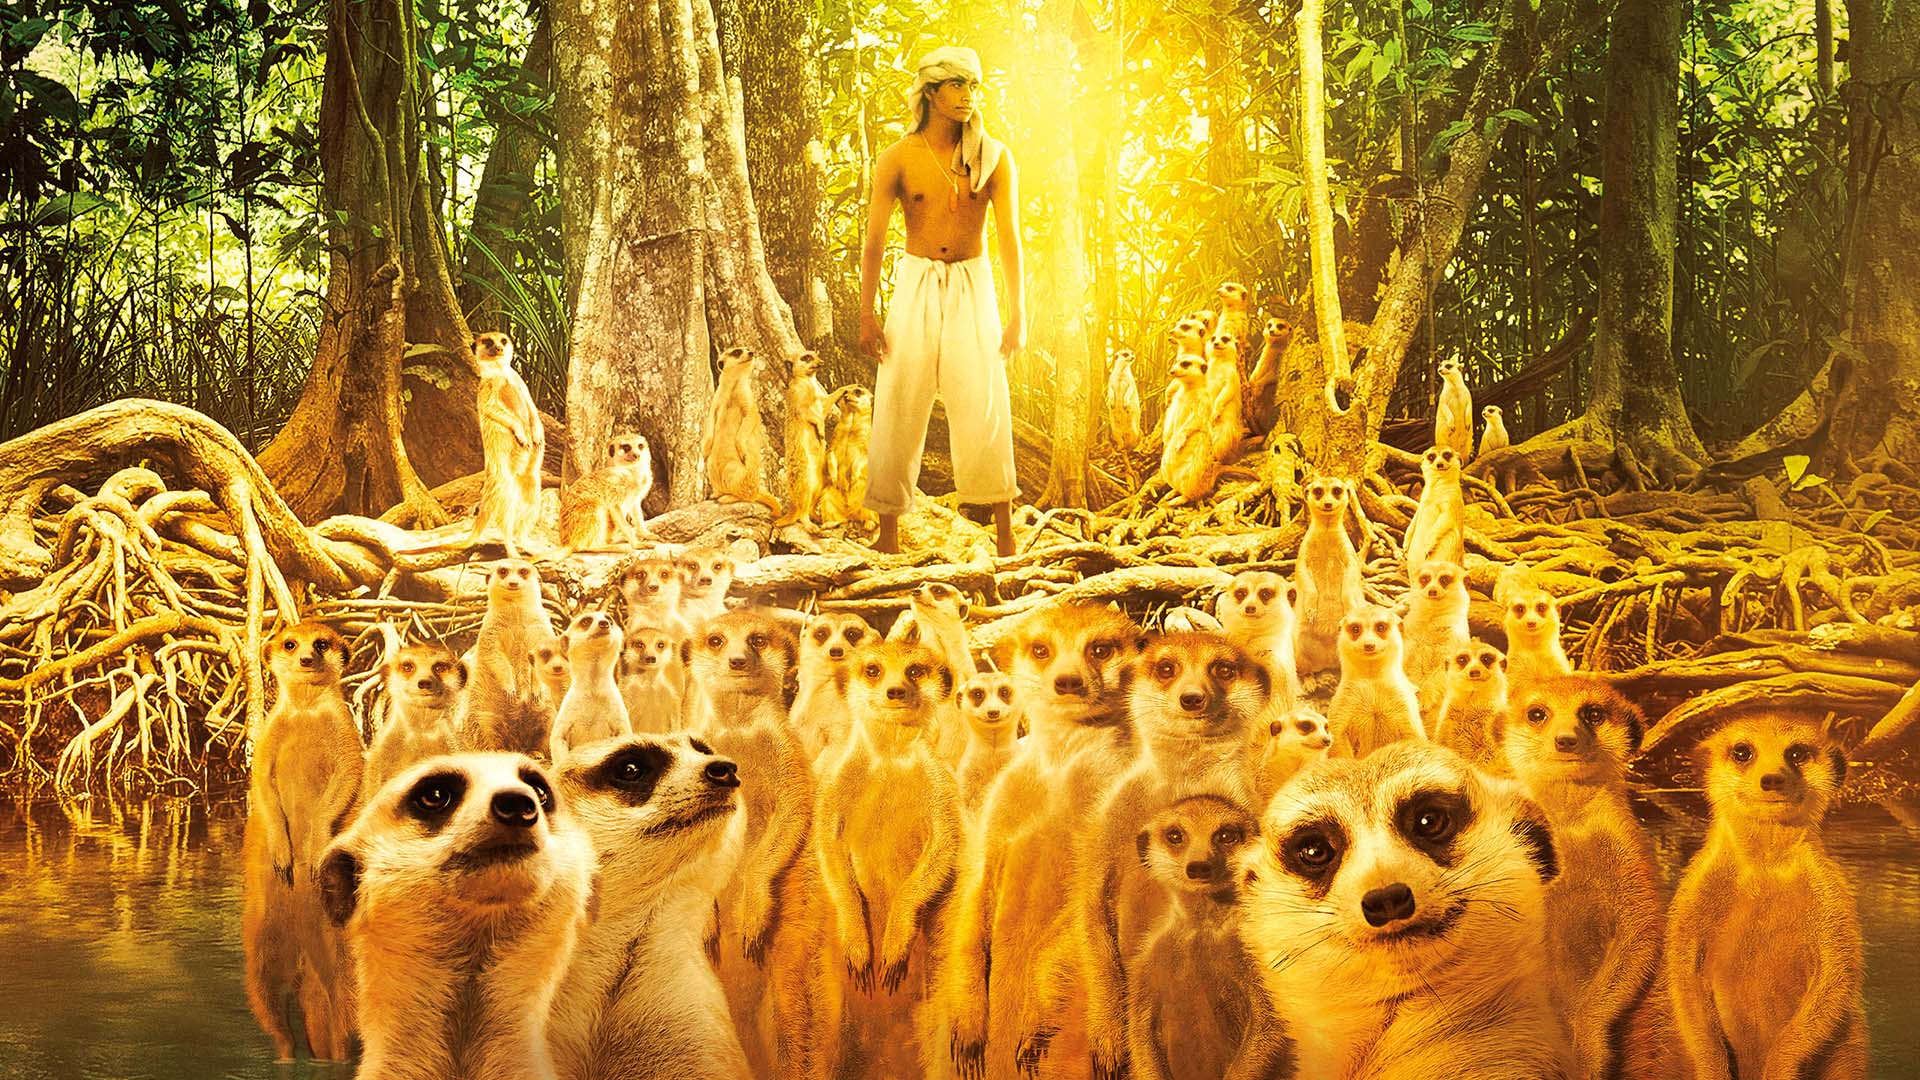 Image gallery meerkat life for Life of pi movie analysis